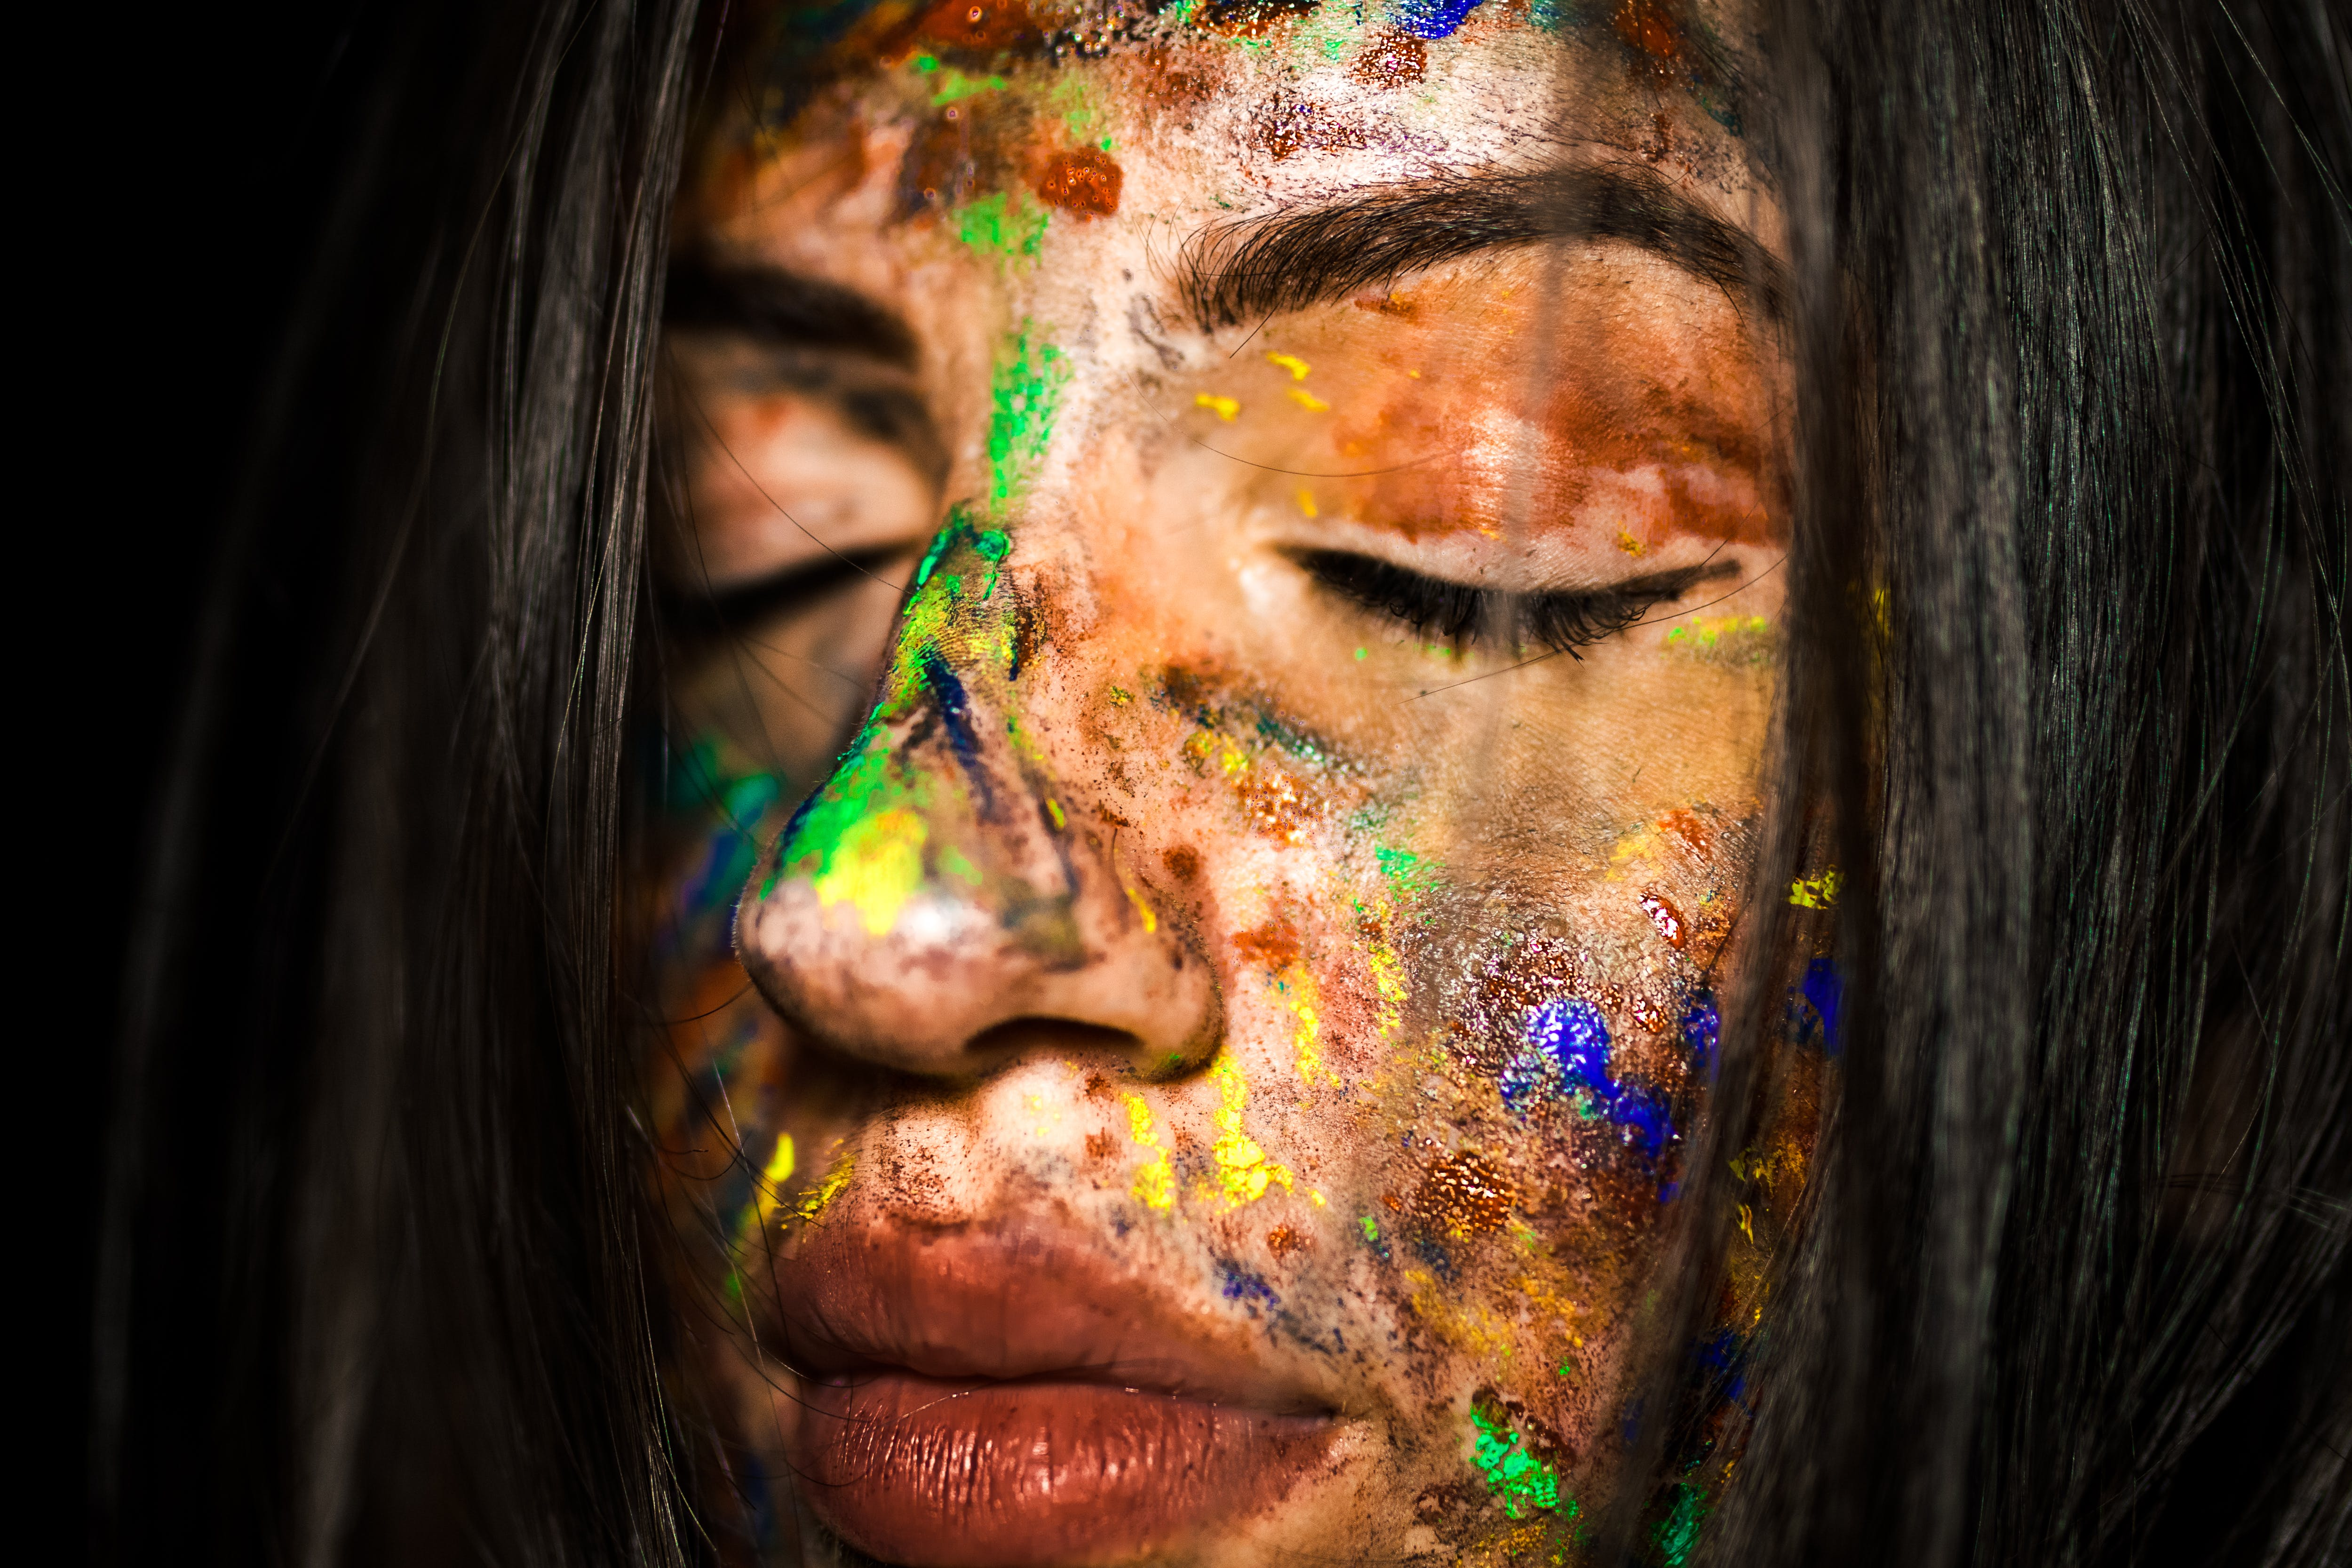 Close-Up Photo of Woman's Face With Paint